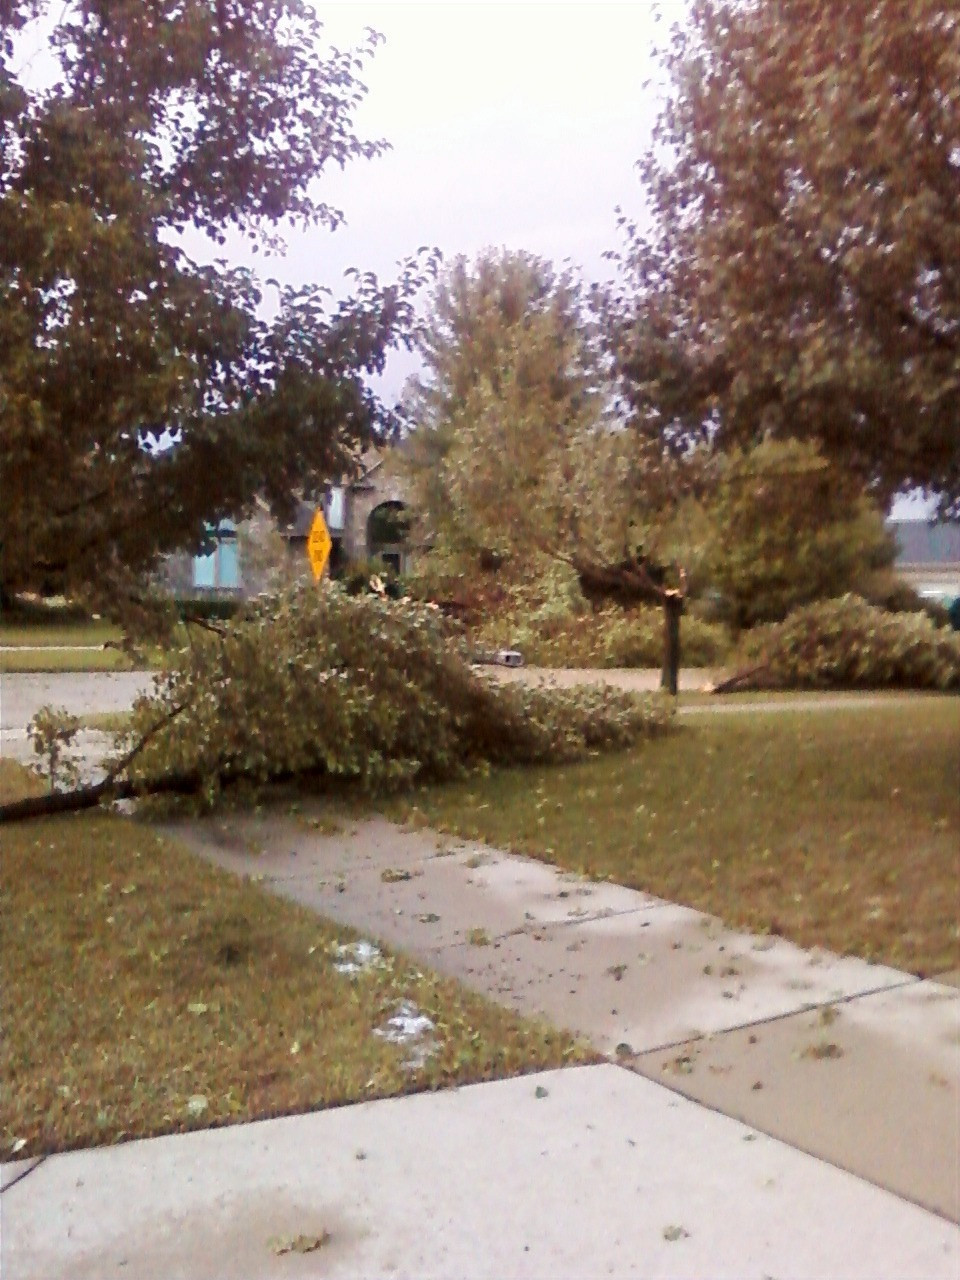 Trees downed from an EF-1 tornado directly across the street from our house in Shelby Charter Township, MI (August 2010)